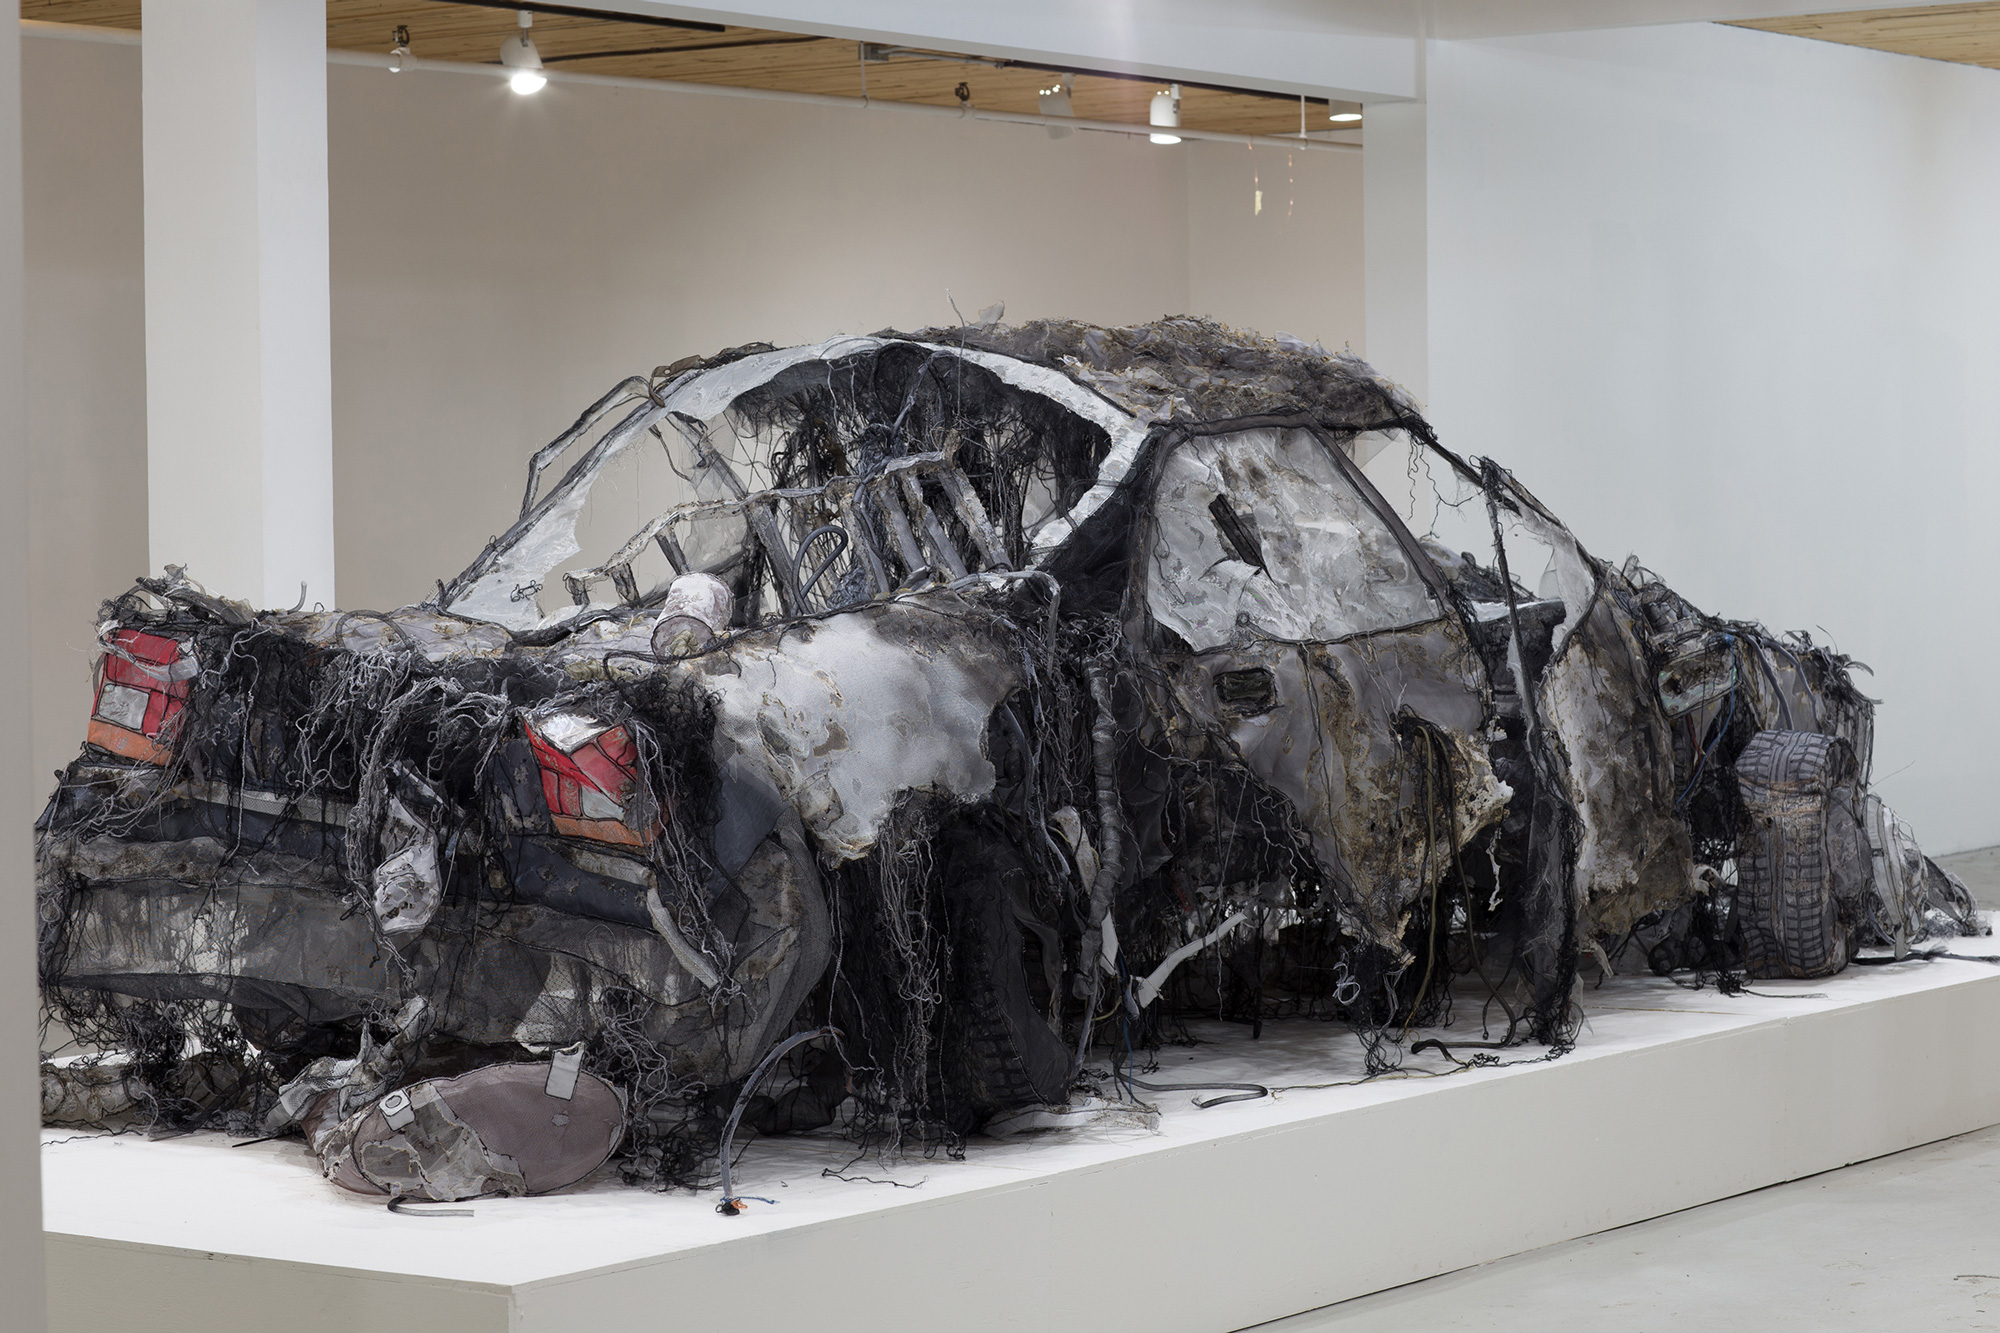 A Full-Scale Demolished Car Constructed From Silk, Aluminum Mesh, and Tulle by Jannick Deslauriers (8 pics)